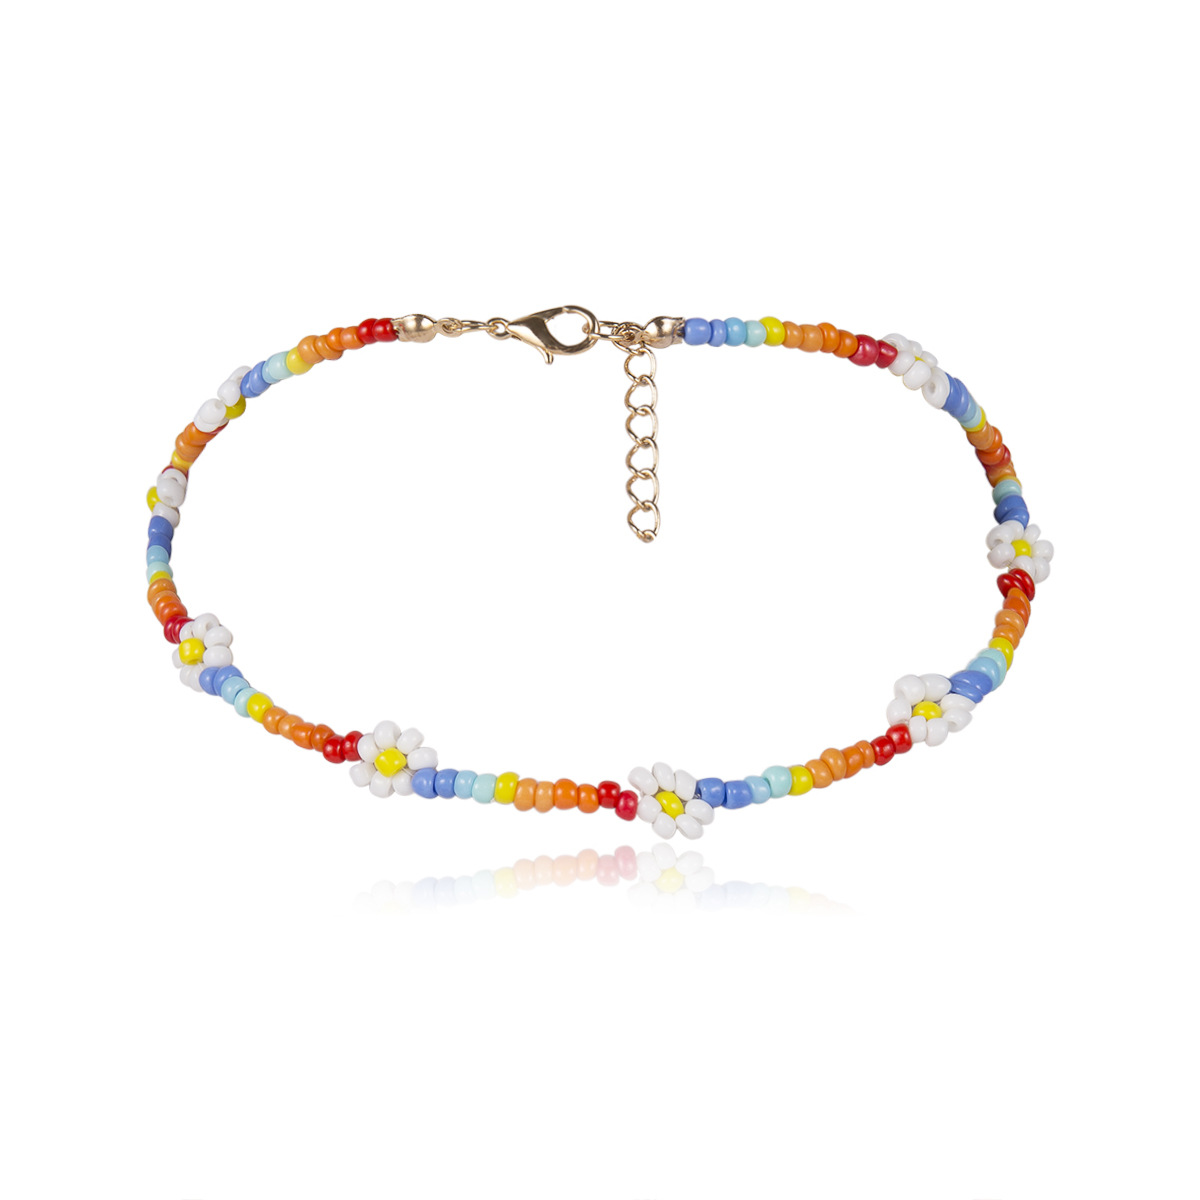 UOTOP 2019 New Bohemian Ethnic Style Handmade Beaded Necklace Female Vosc Girl Choker Flower Necklaces for Women Boho Jewelry in Choker Necklaces from Jewelry Accessories